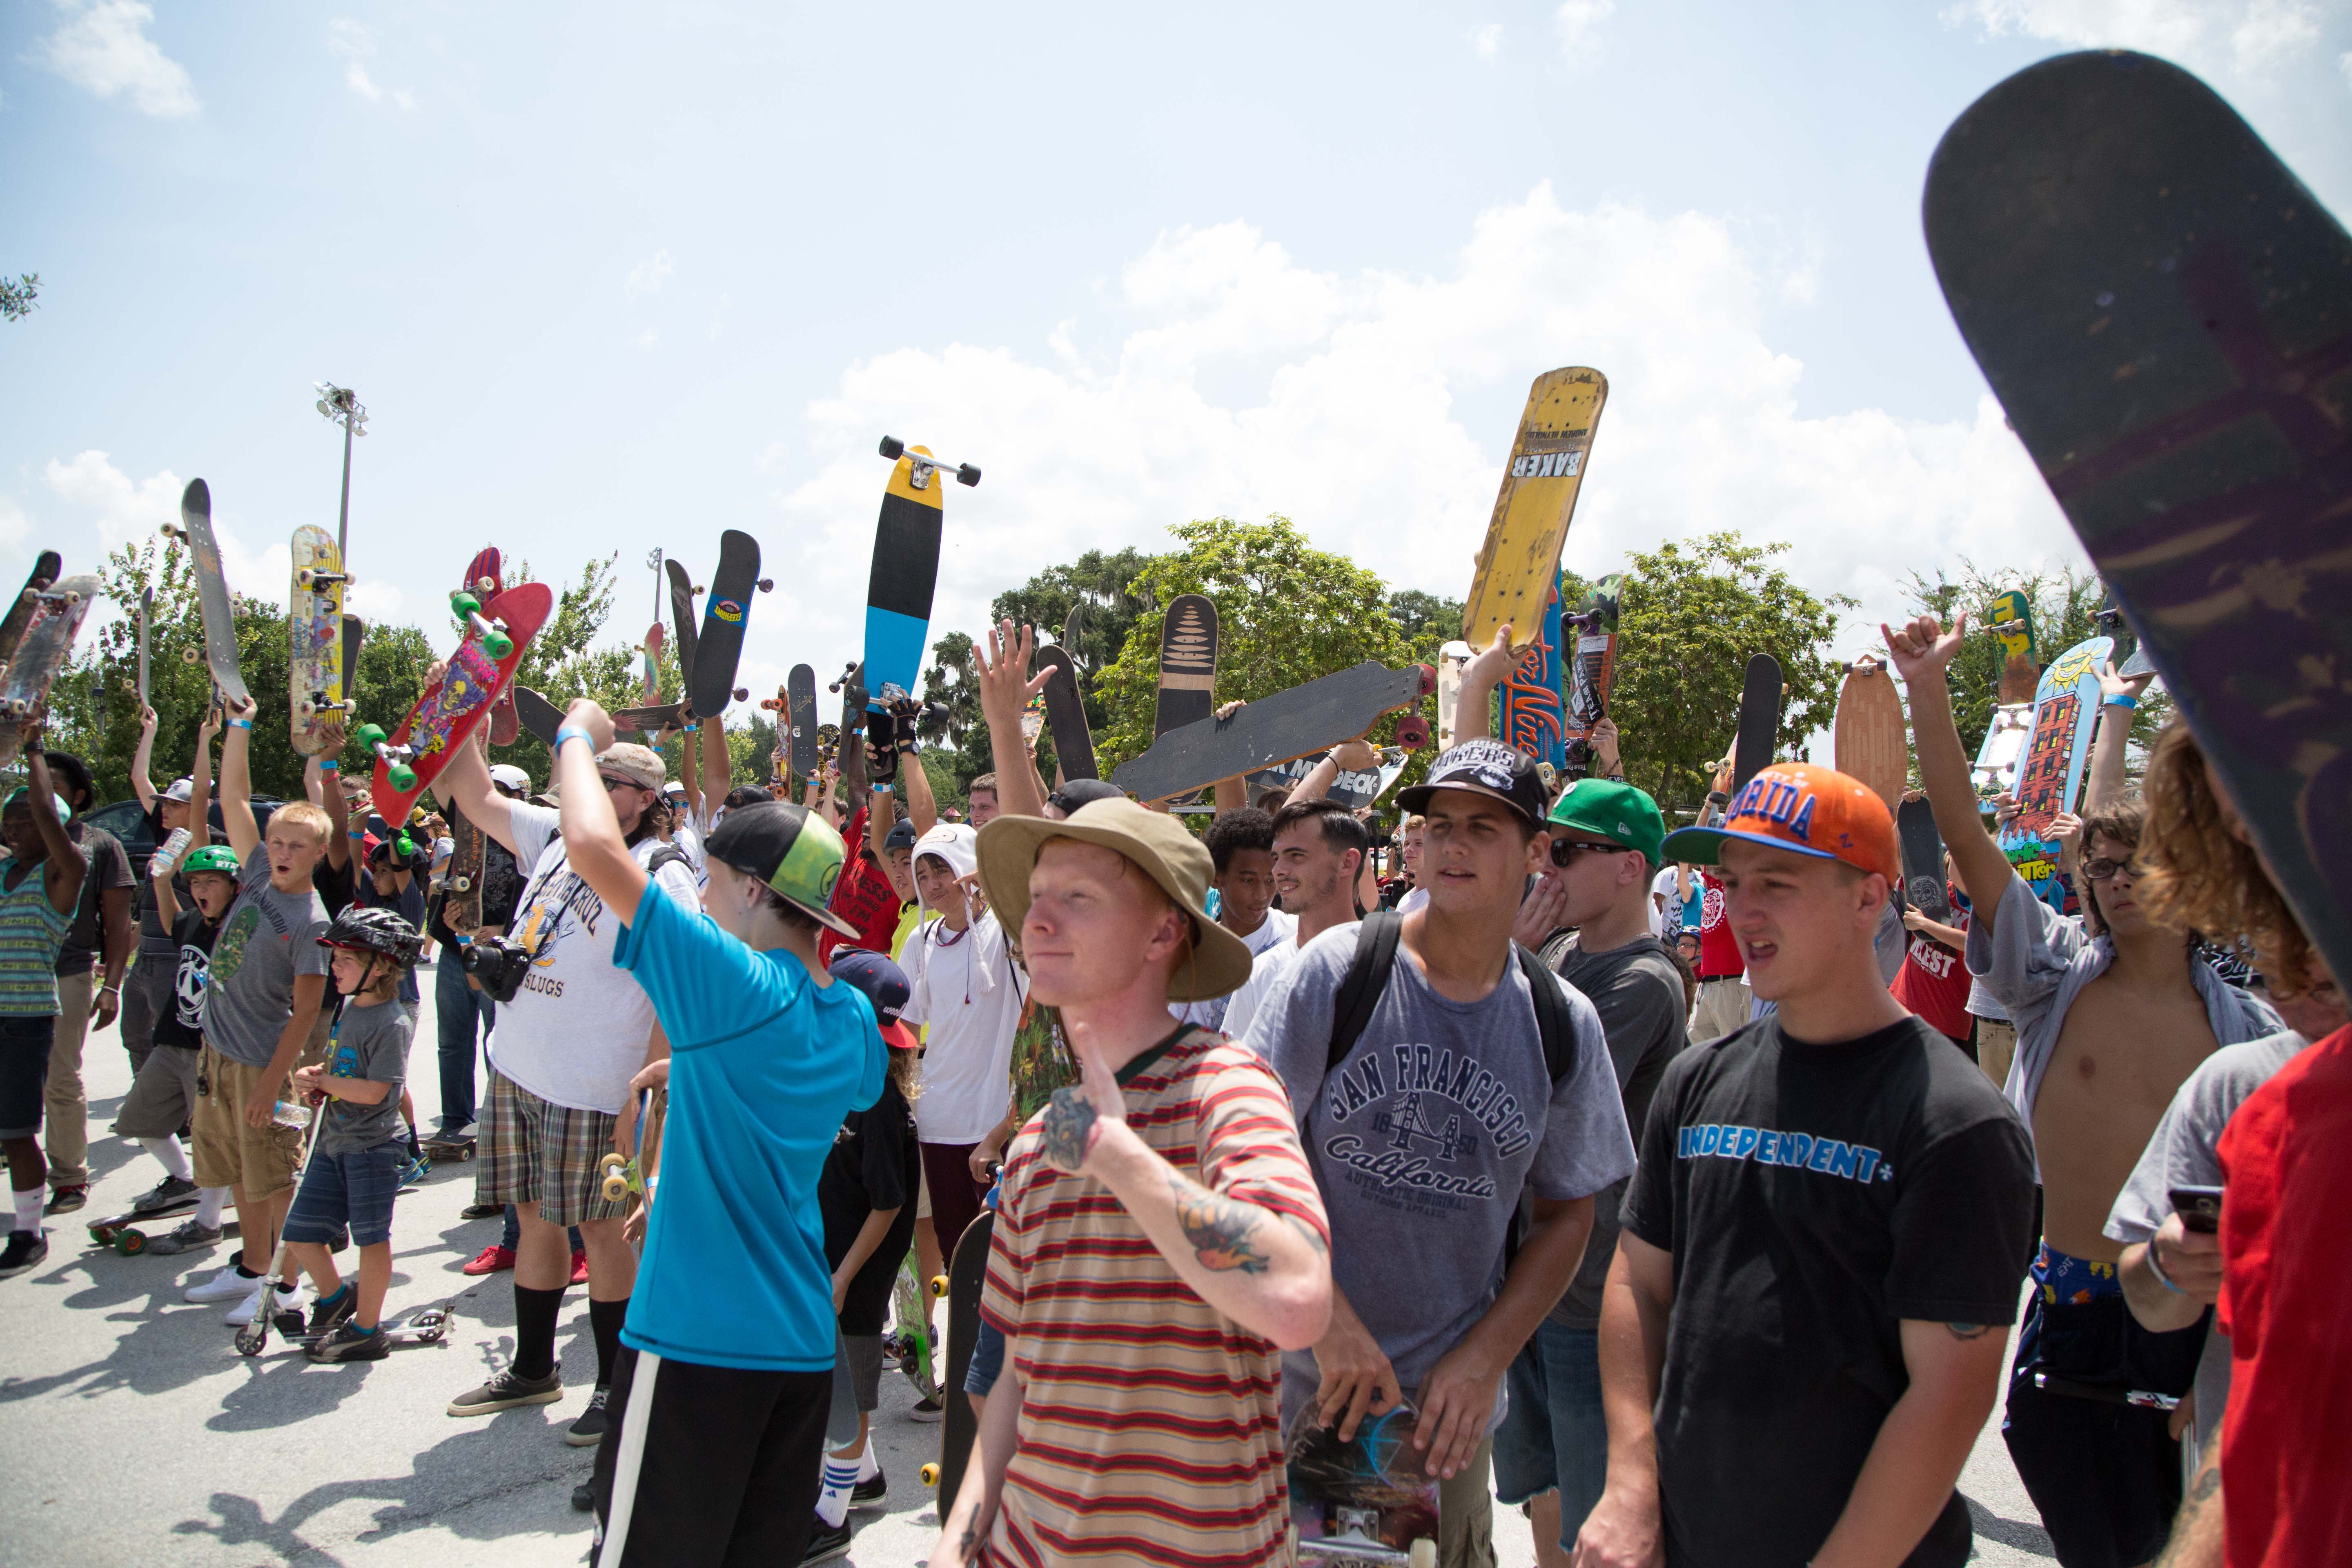 The crowd cheers on the best skateboarding trick winner at Innoskate in FL